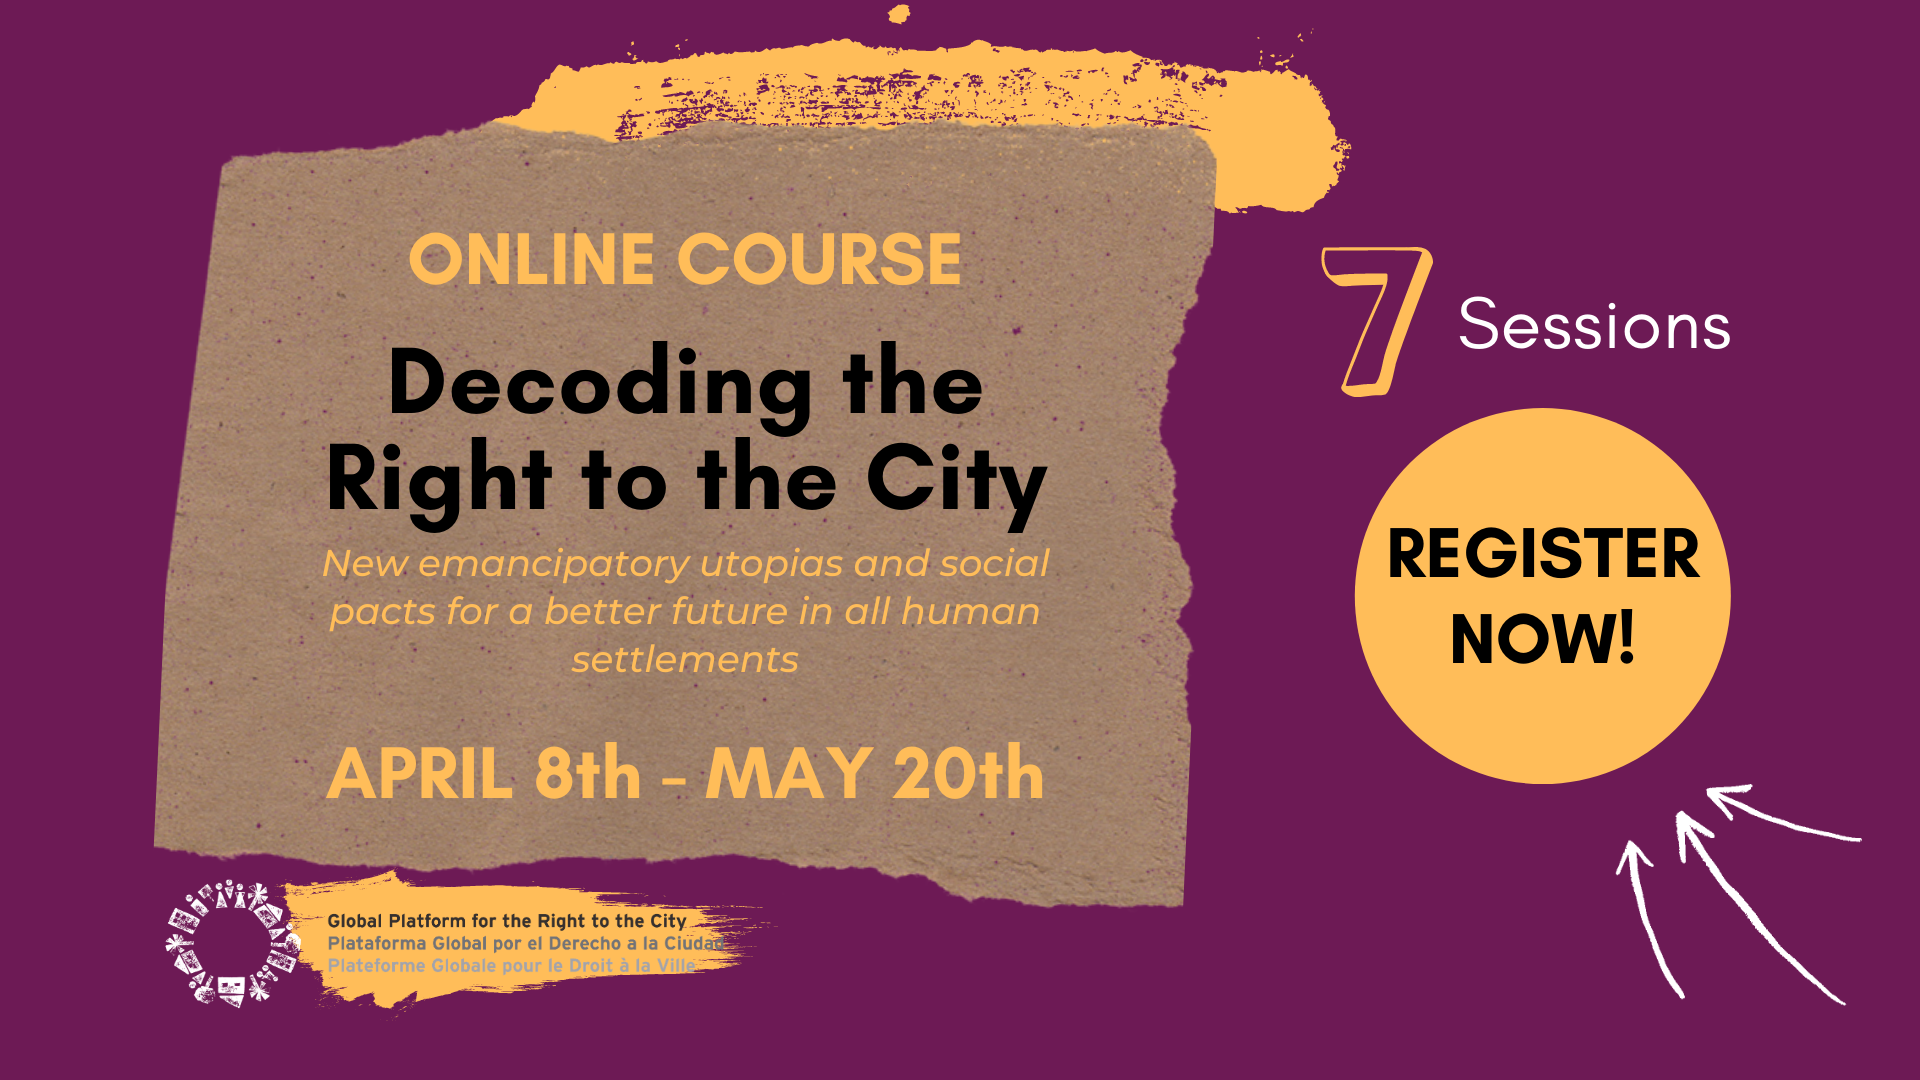 Decoding the Right to the City